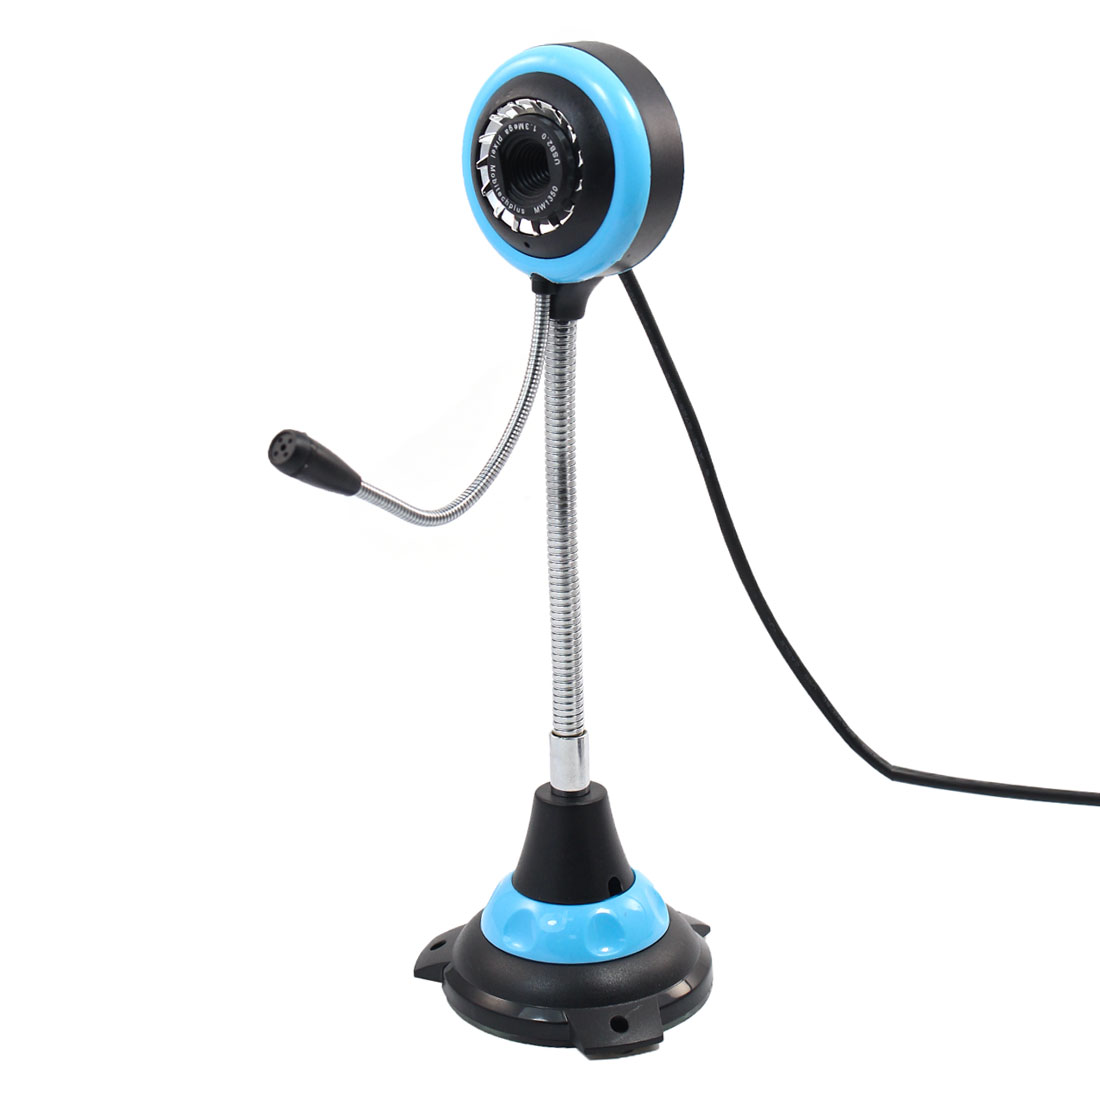 Tennis Ball Design PC Web Camera Black Sky Blue w 3.5mm Microphone